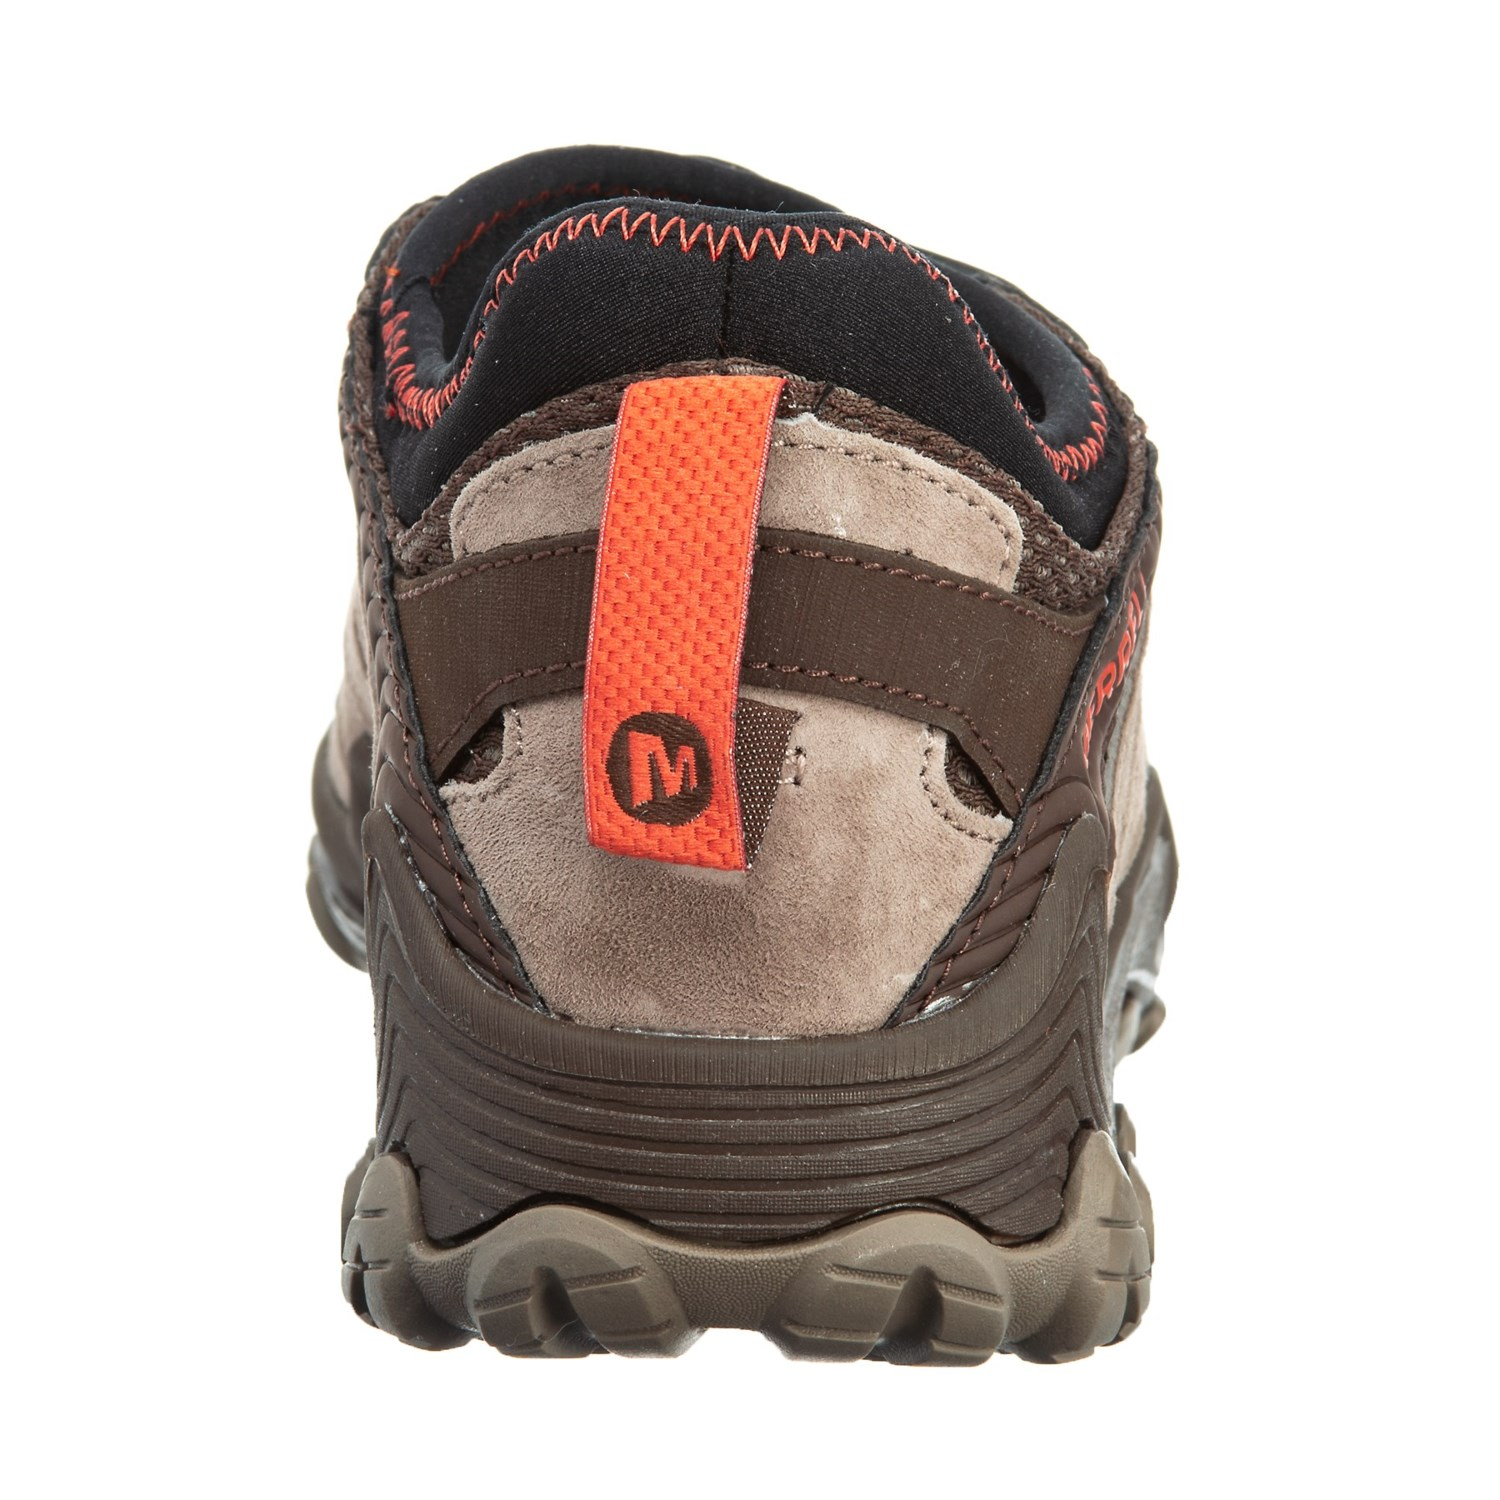 01055adc6c0 Merrell Chameleon 7 Limit Stretch Hiking Shoes - Suede (For Women)